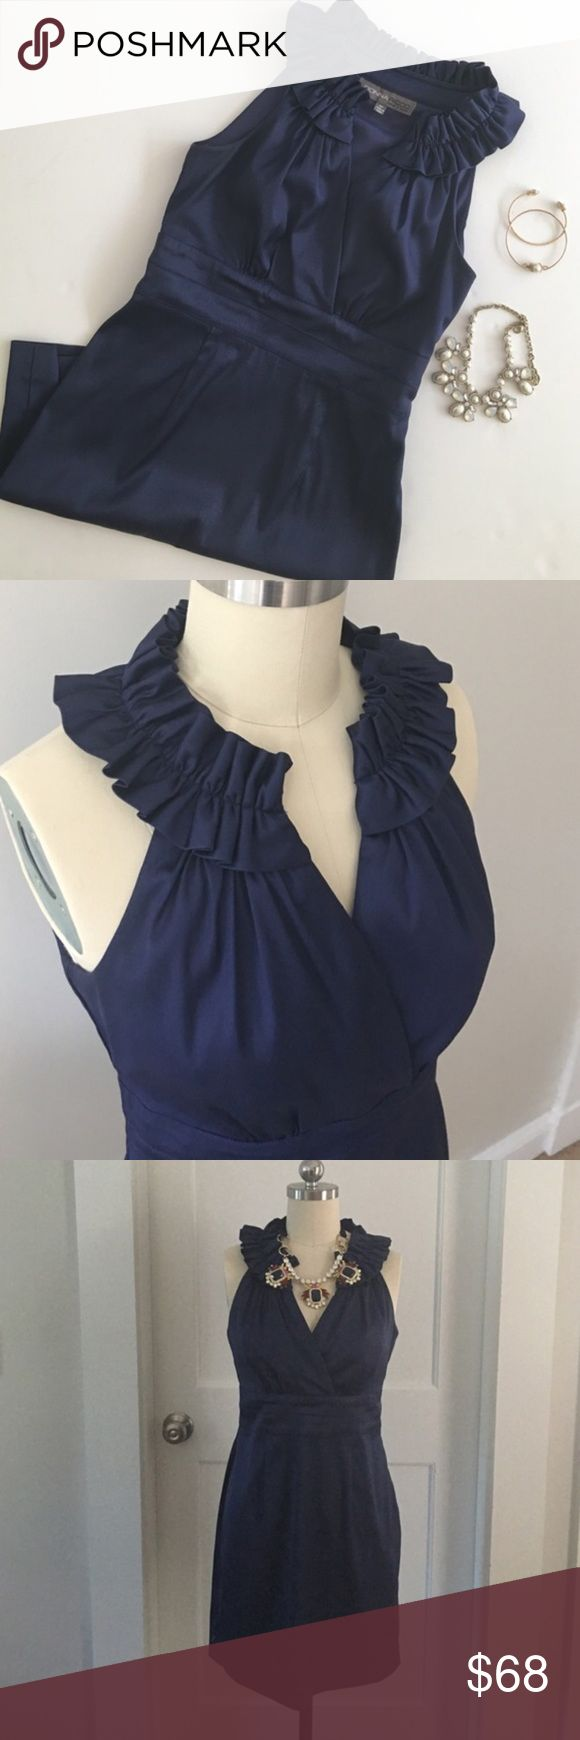 Donna Ricco Navy Dress Navy satin ruffled v-neck wrap bodice formal dress by Donna Ricco. Side zip. Size 4P. Like New! Donna Ricco Dresses Midi